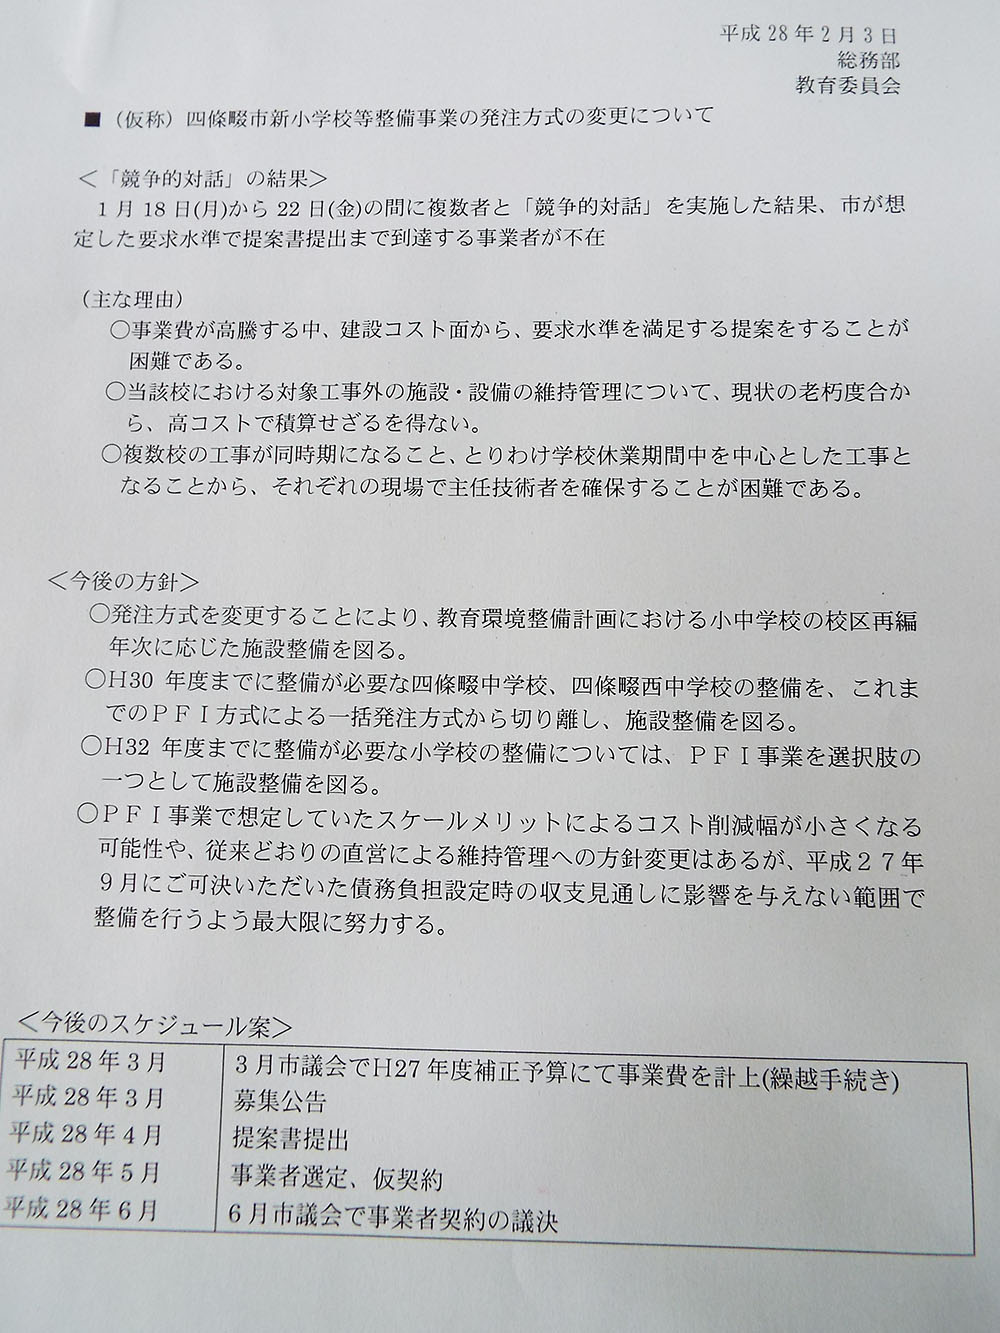 学校統廃合整備計画のPFI事業頓挫。市長・教育長はどう責任を取るのか!?